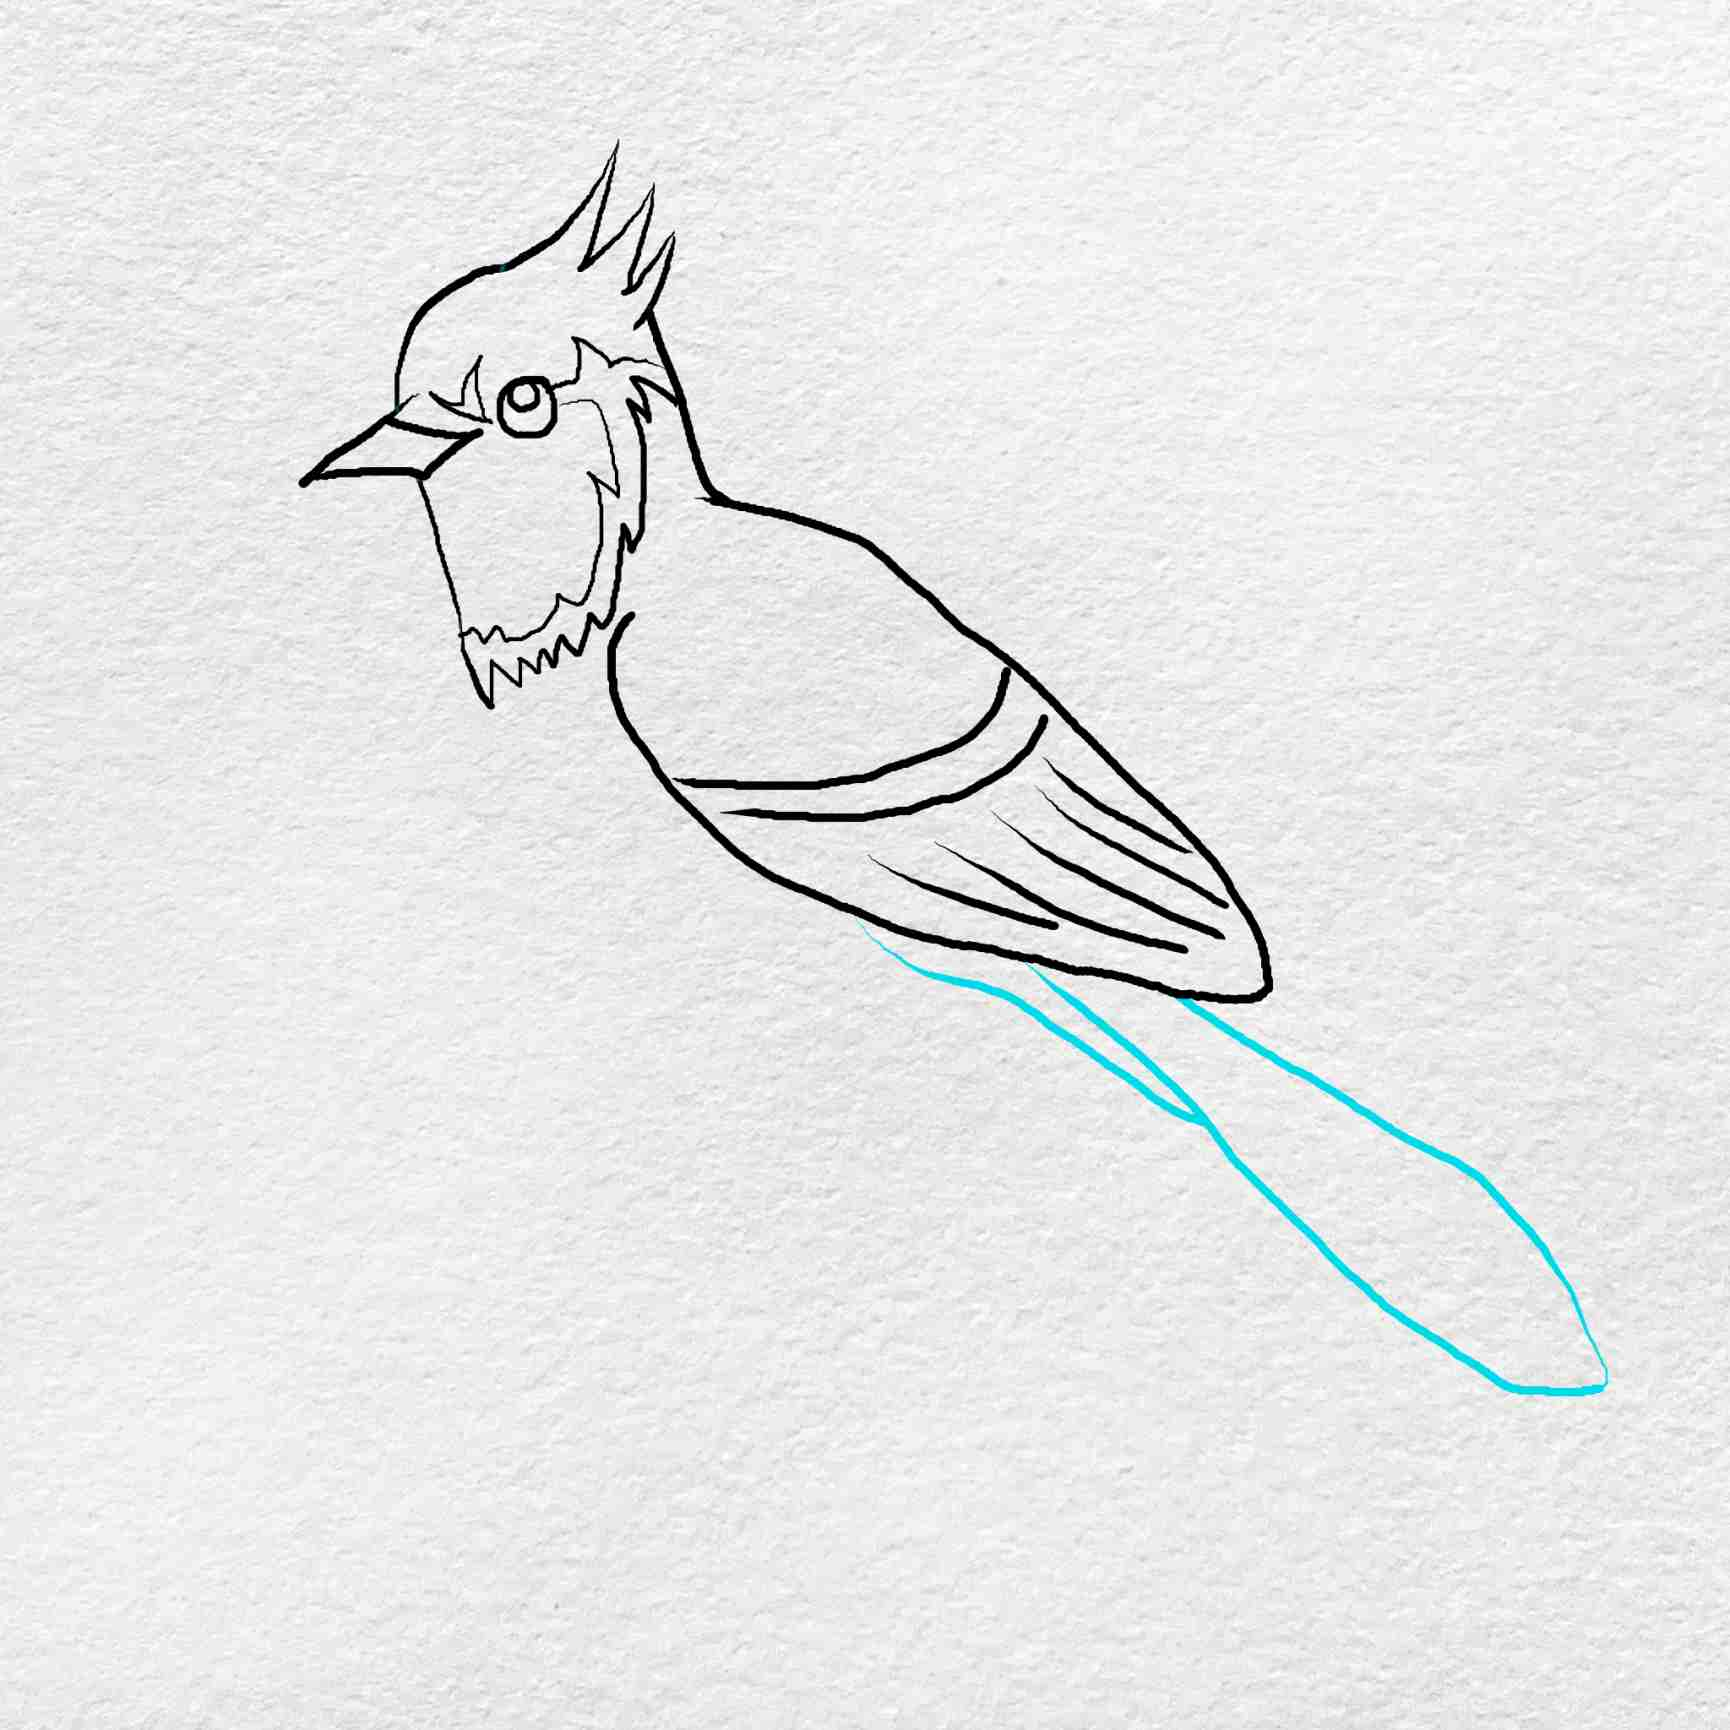 How To Draw A Blue Jay: Step 5